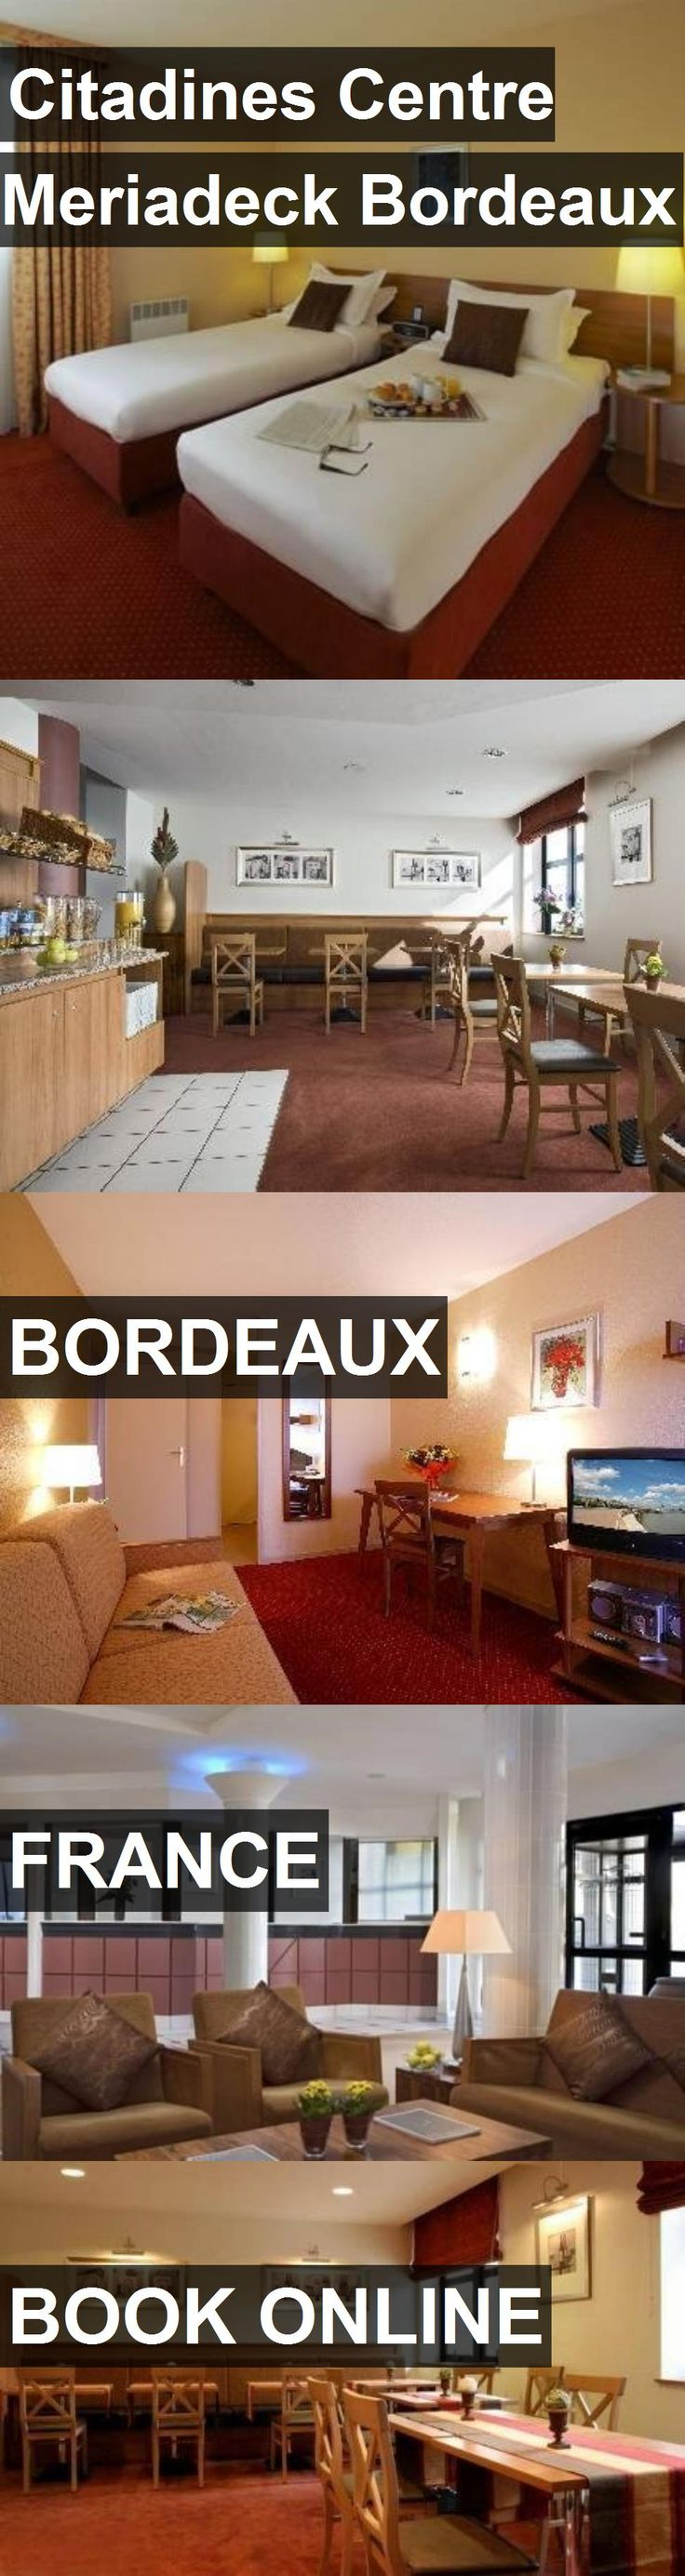 Hotel Citadines Centre Meriadeck Bordeaux in Bordeaux, France. For more information, photos, reviews and best prices please follow the link. #France #Bordeaux #travel #vacation #hotel